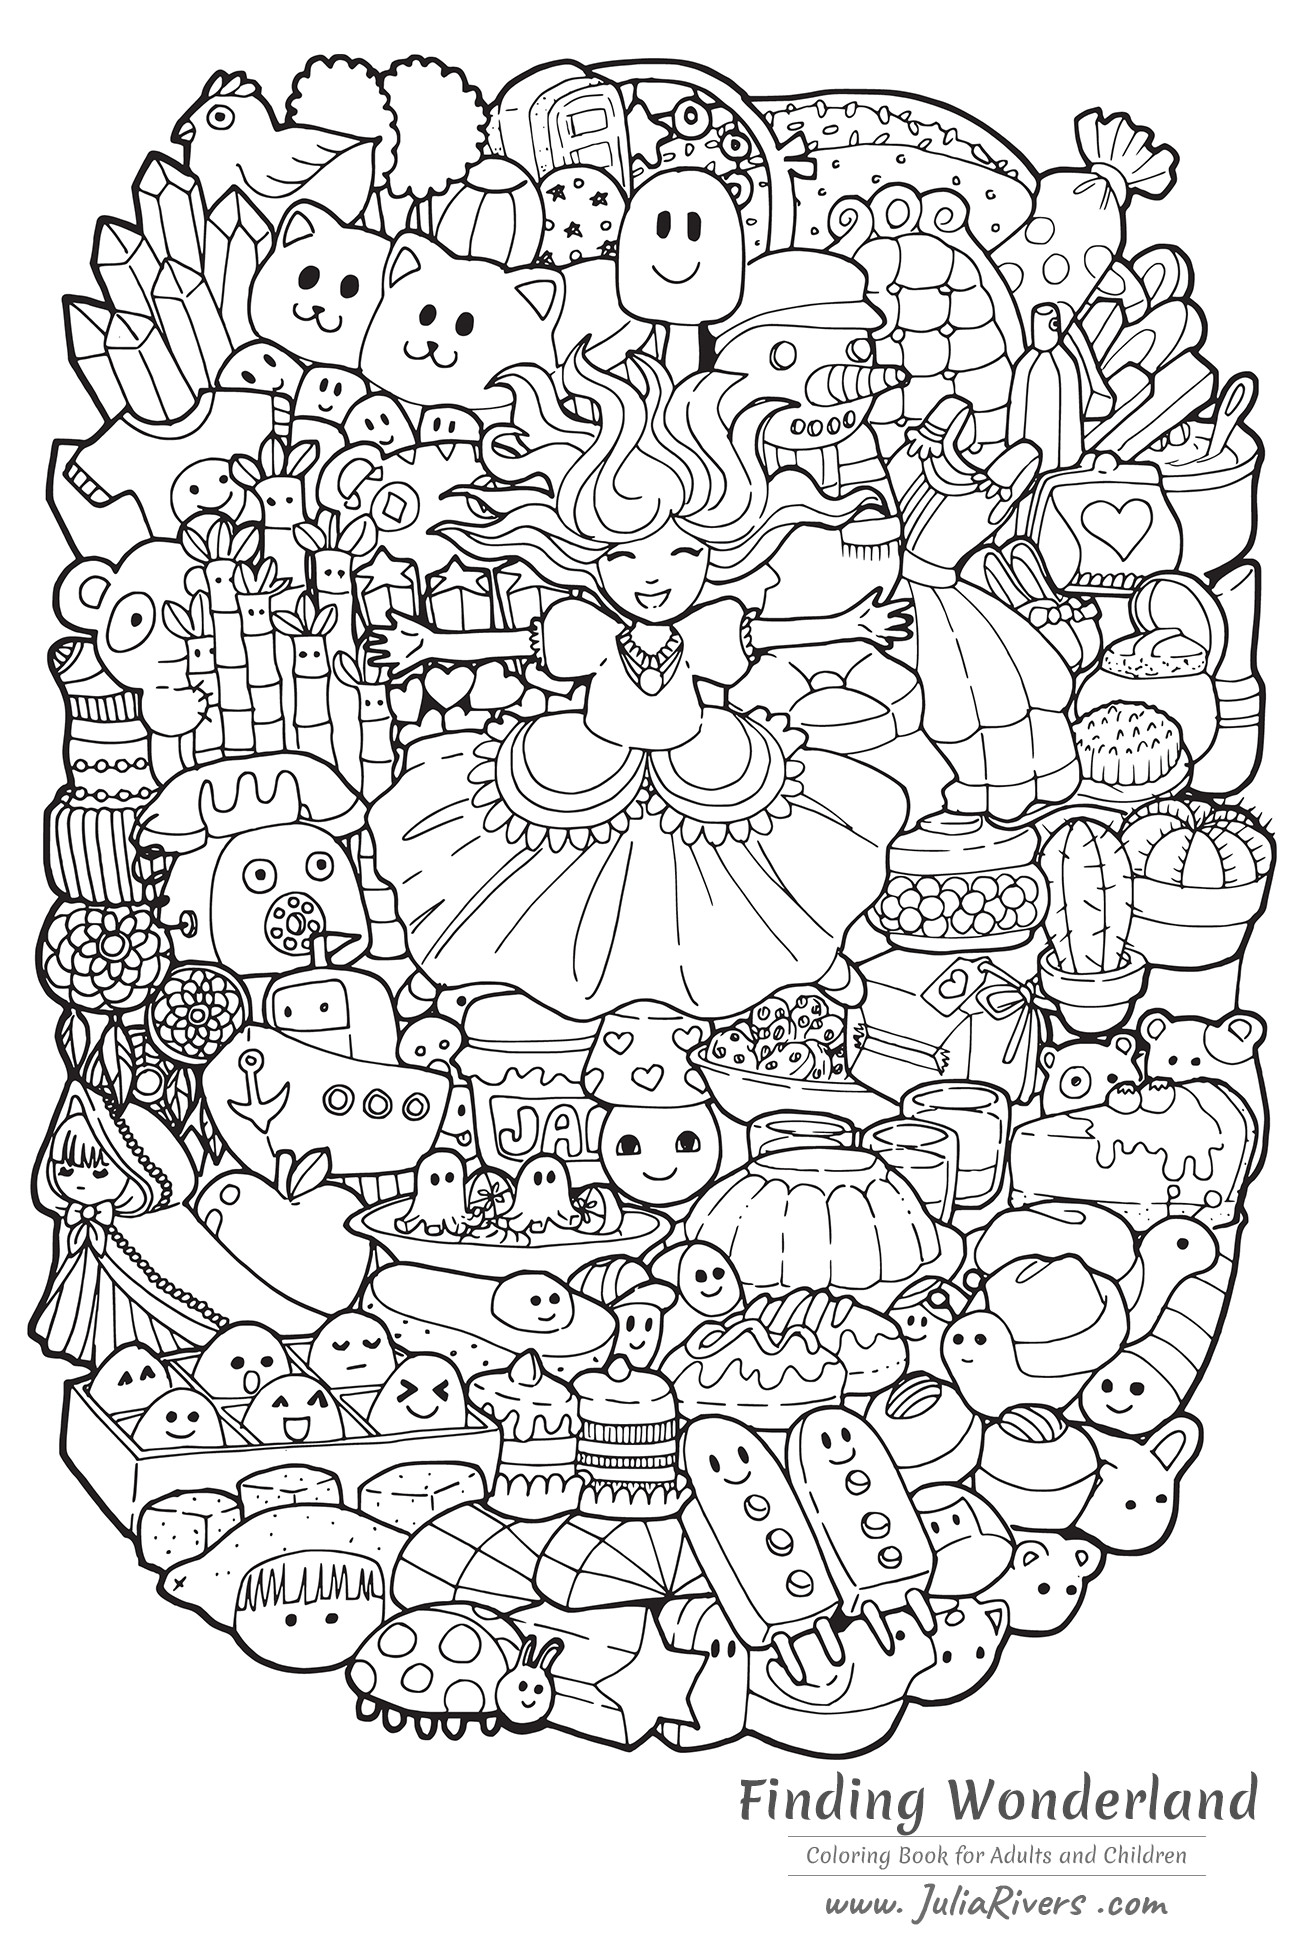 'Finding Wonderland' : Gorgeous coloring pages with a happy Princess and various Doodle characters (Kawaii style)